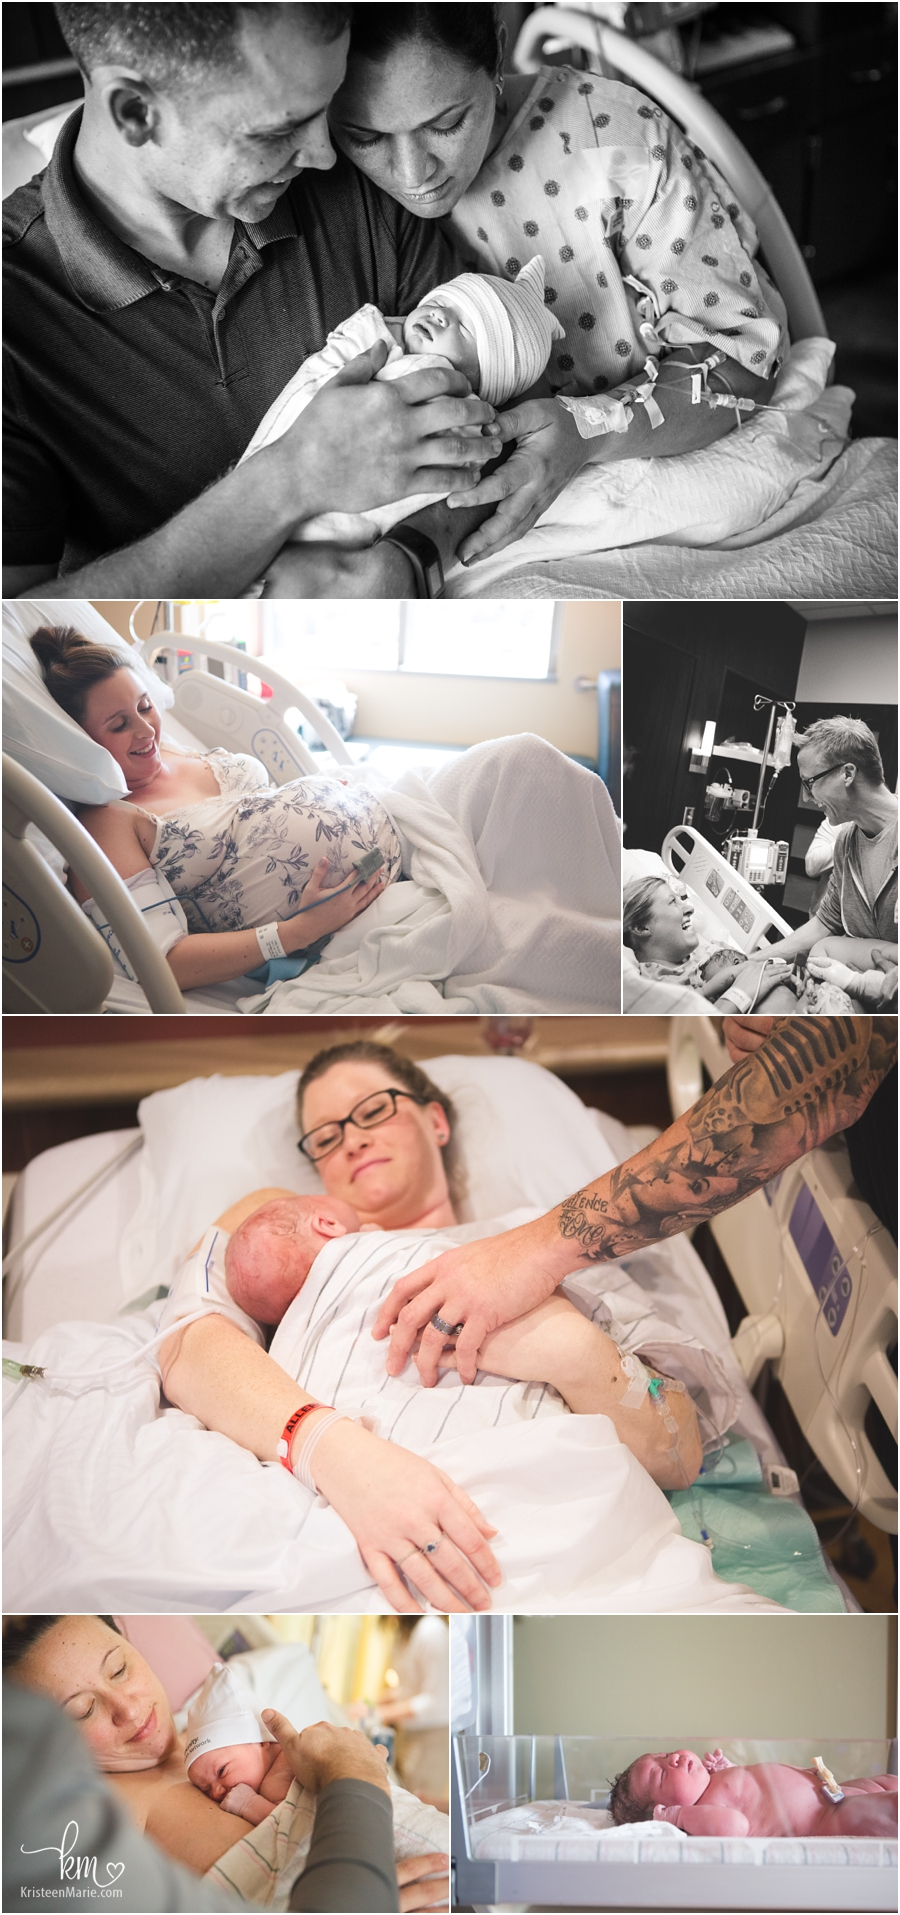 Indianapolis Birth Photography - Beautiful Birth Photography